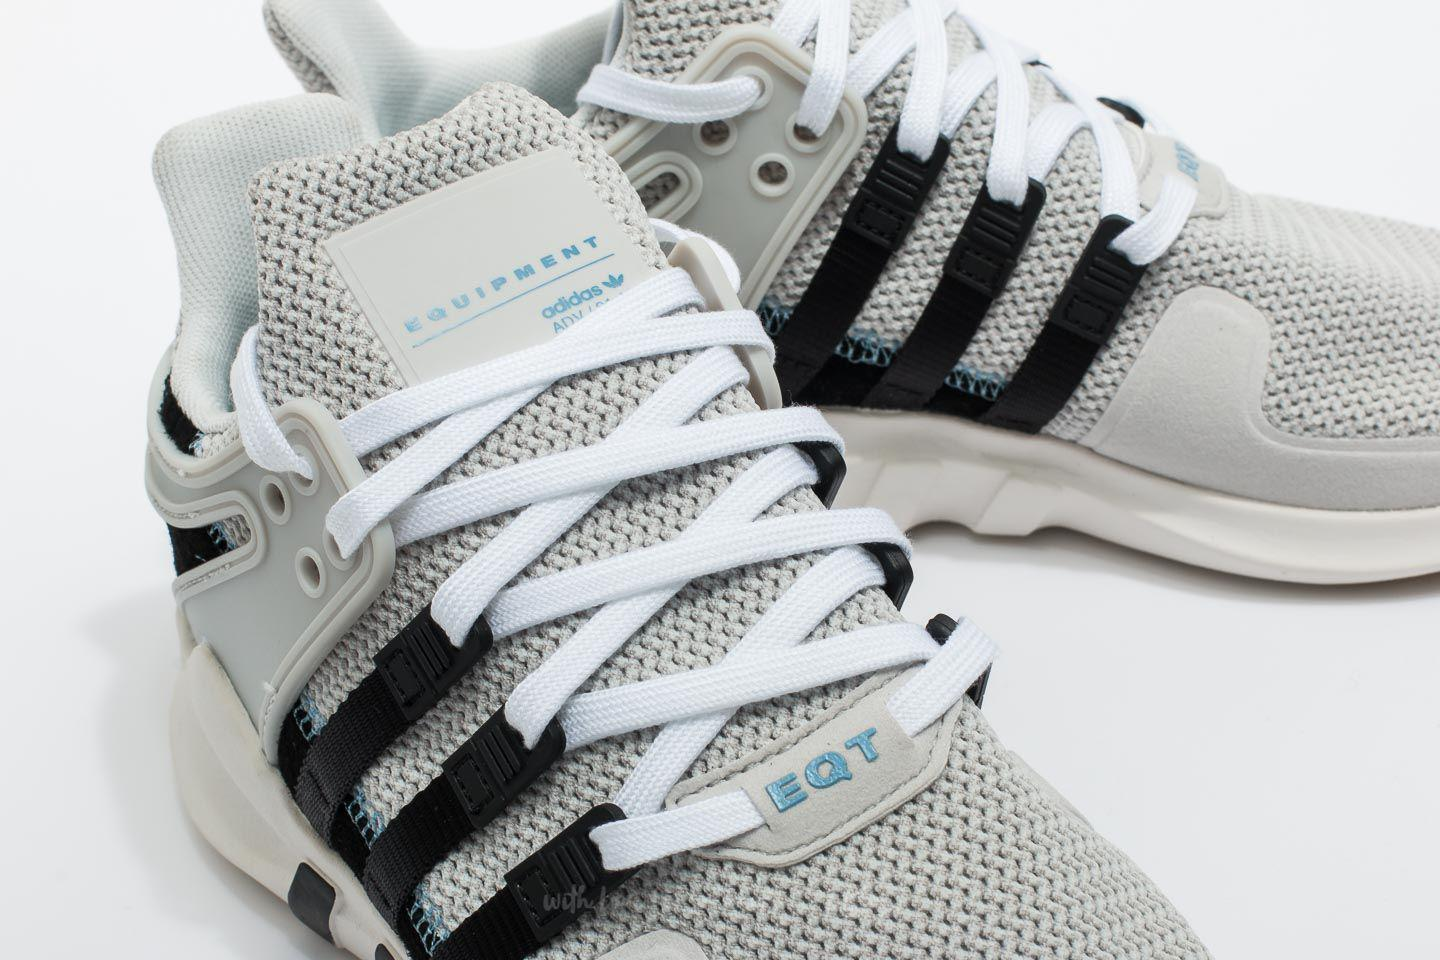 finest selection 284a8 72a30 Lyst - adidas Originals Adidas Eqt Support Adv W Grey One Co